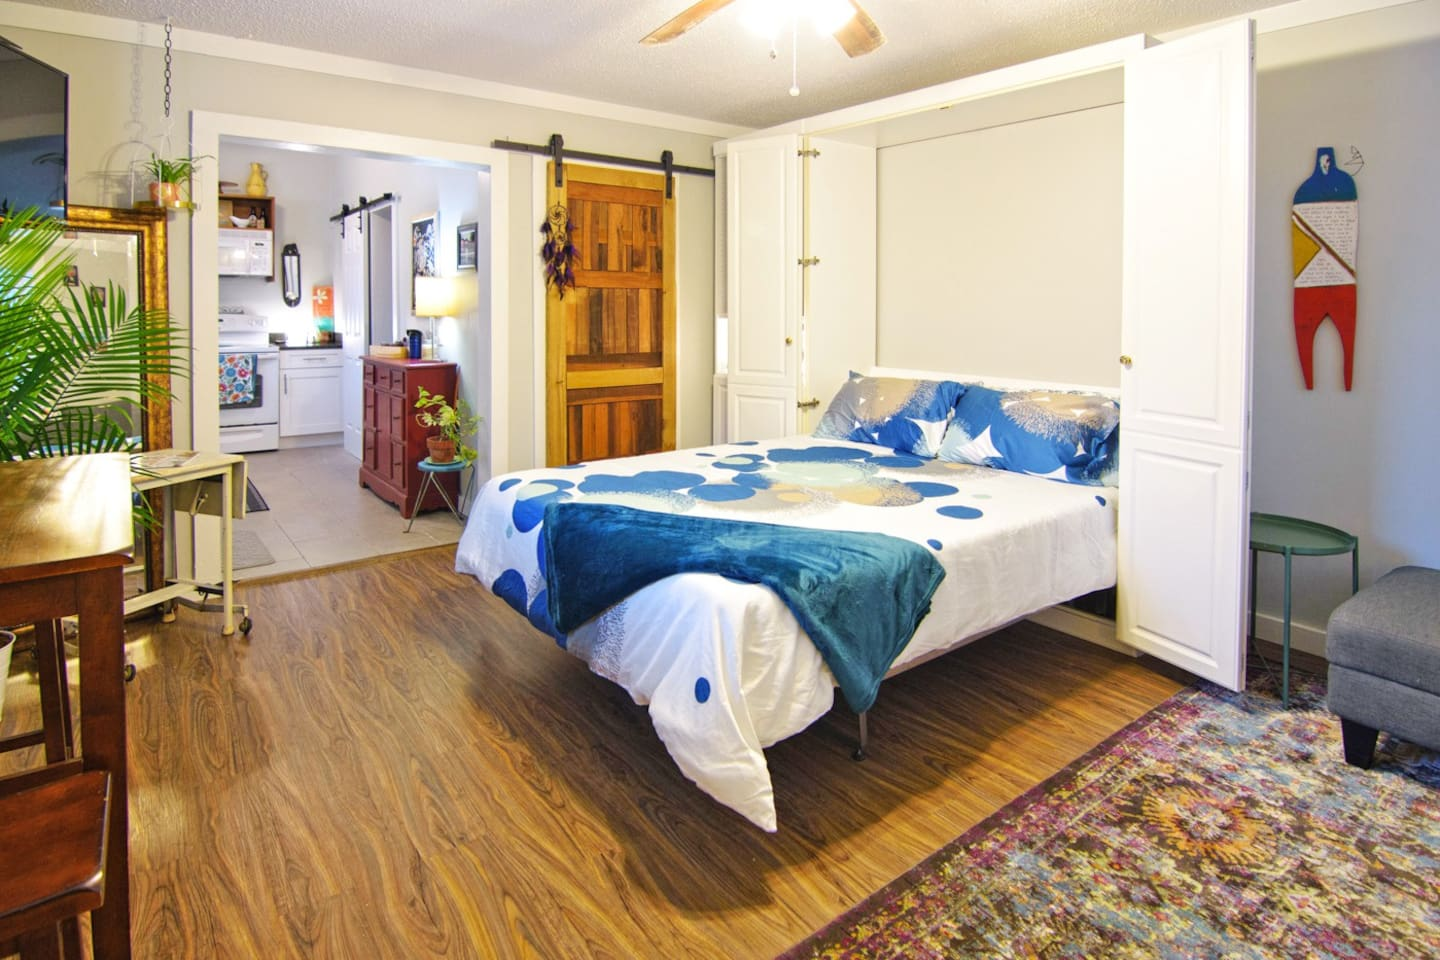 This studio apartment is cozy and spacious. The Queen sized Murphy bed is easy to pull down or hideaway (our grandson calls it the transformer house). In the adjoining attached bookcase find the iron & board and blowdryer, or use to hang clothes